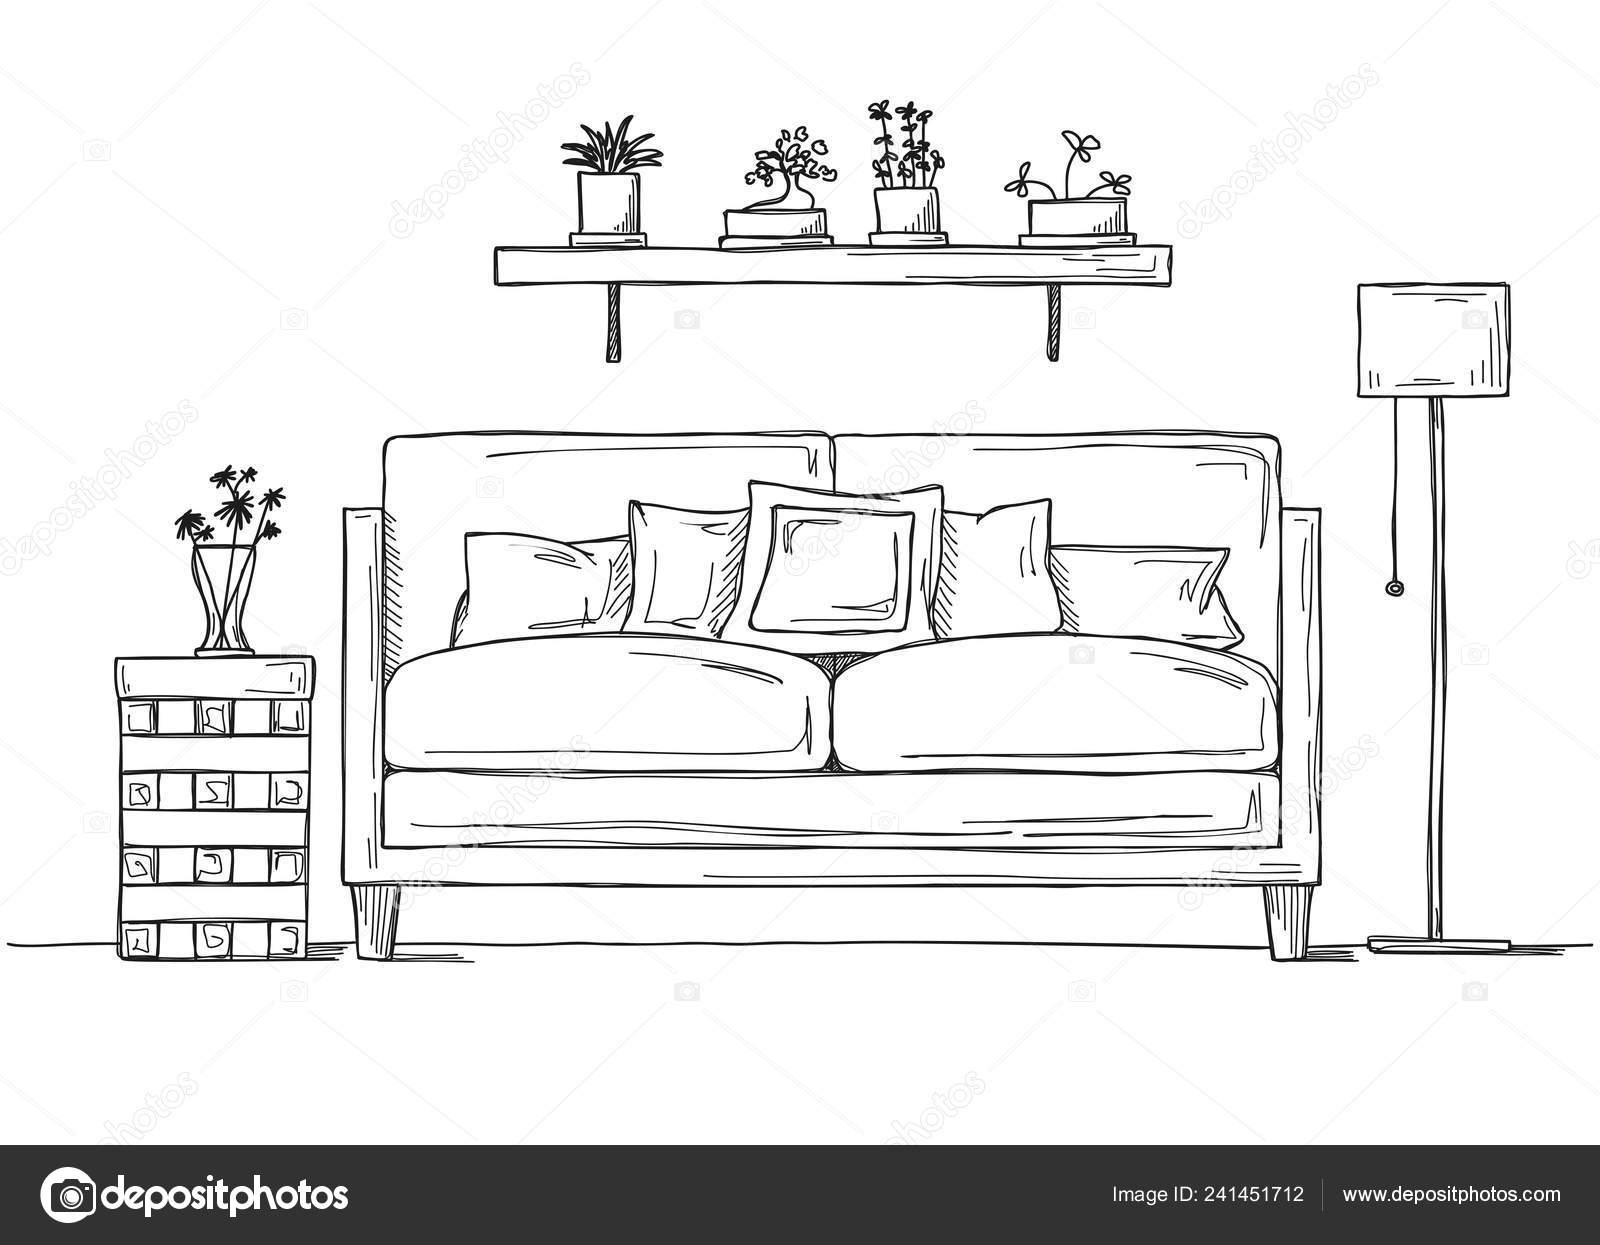 Miraculous Interior Sketch Style Sofa Bedside Table Floor Lamp Shelf Unemploymentrelief Wooden Chair Designs For Living Room Unemploymentrelieforg